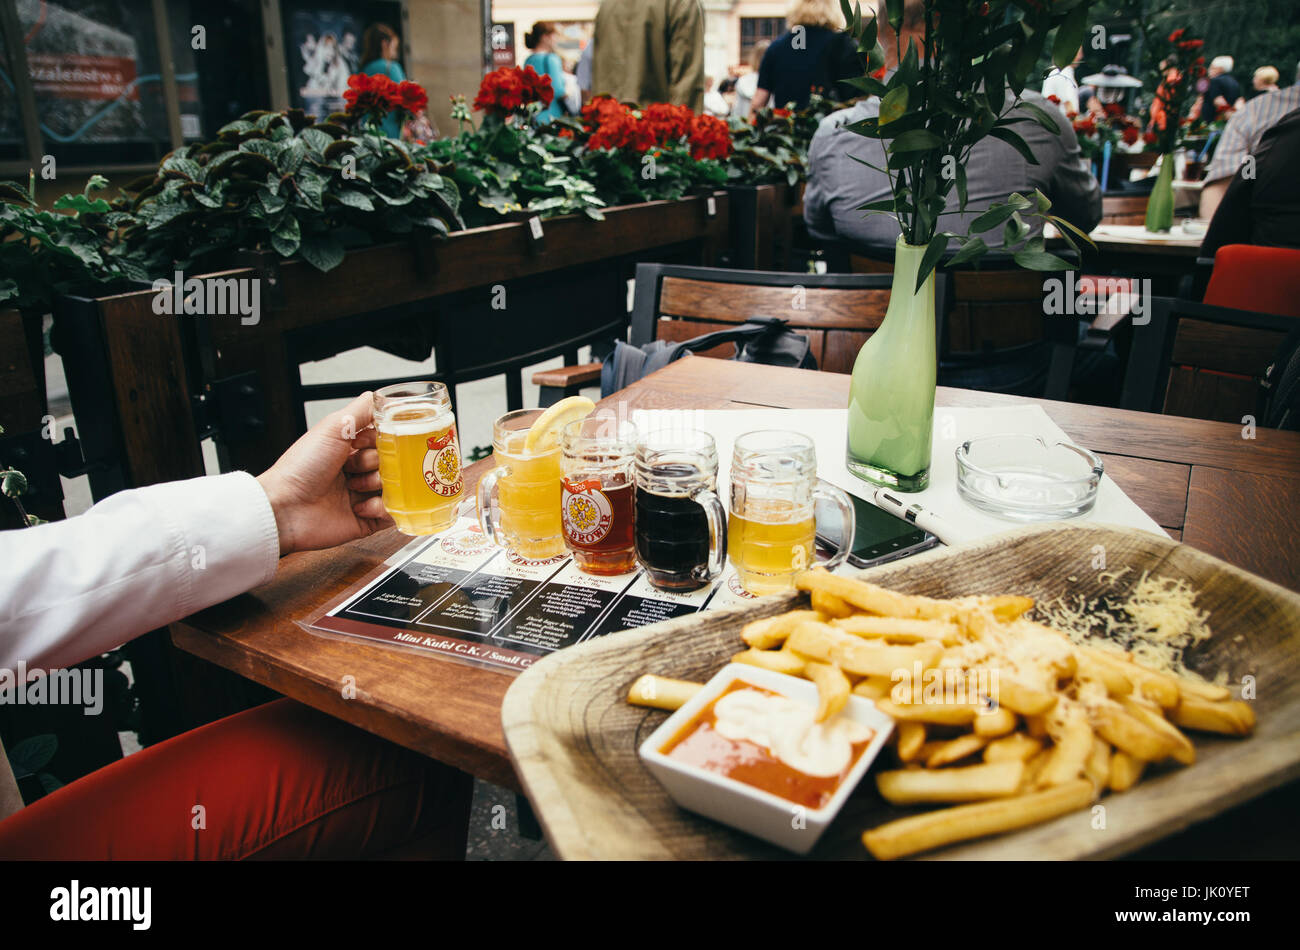 KRAKOW, POLAND - JUNE 27, 2015: Test of beer with a lots of different beers. A hand holdes a glass of beer. - Stock Image